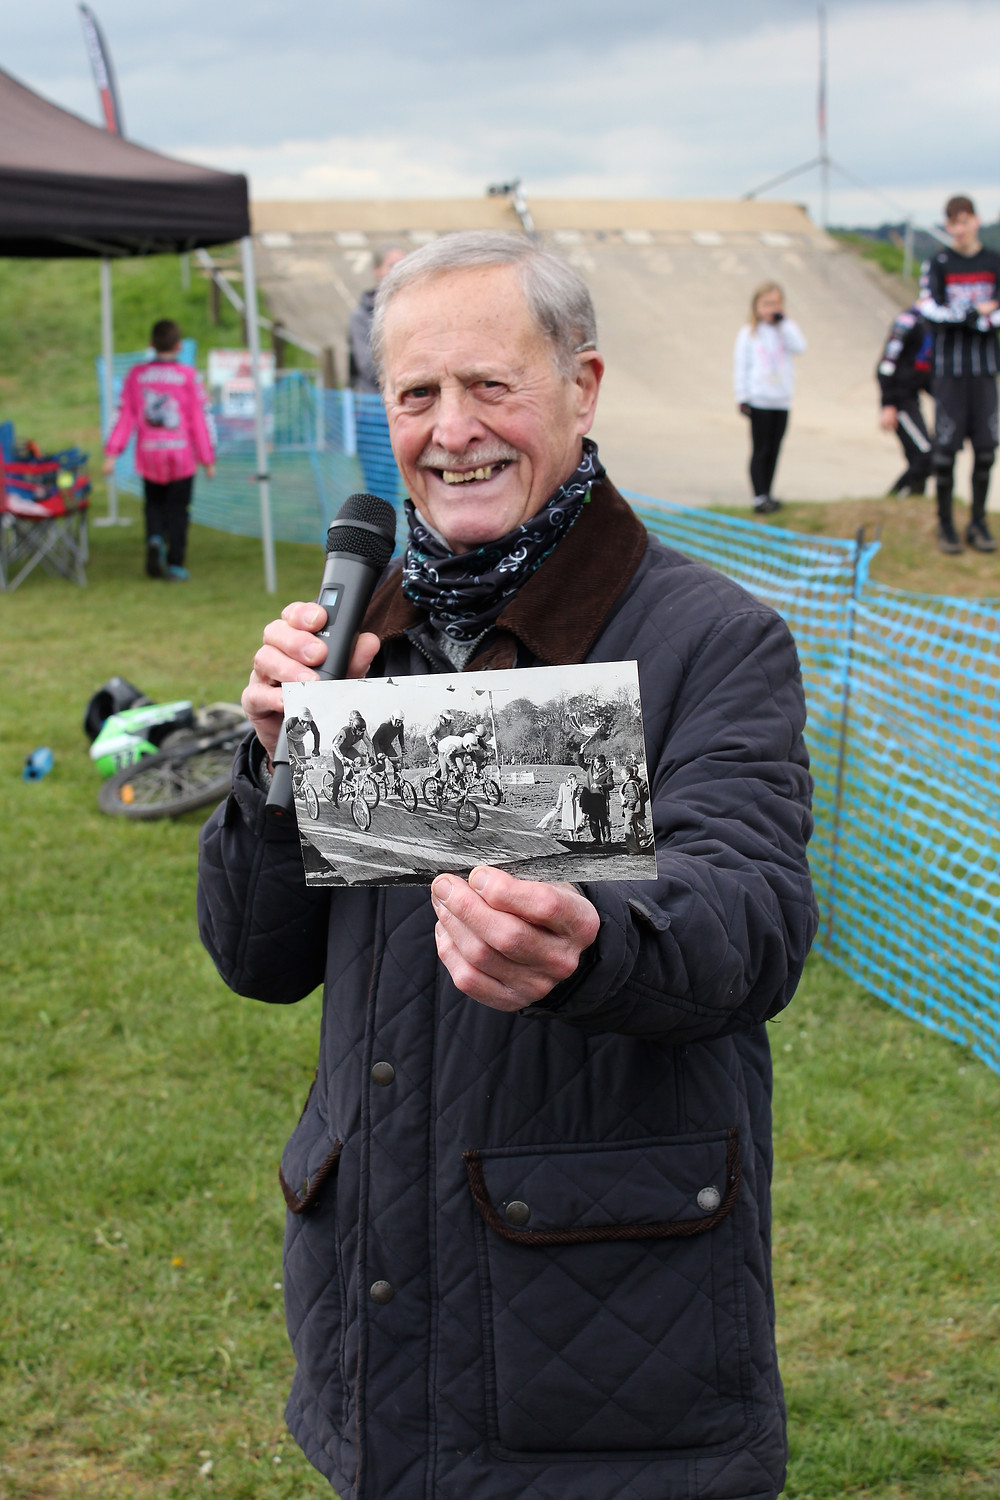 One of the club's founders with a photo of the first race at Landseer Park in November 1980.